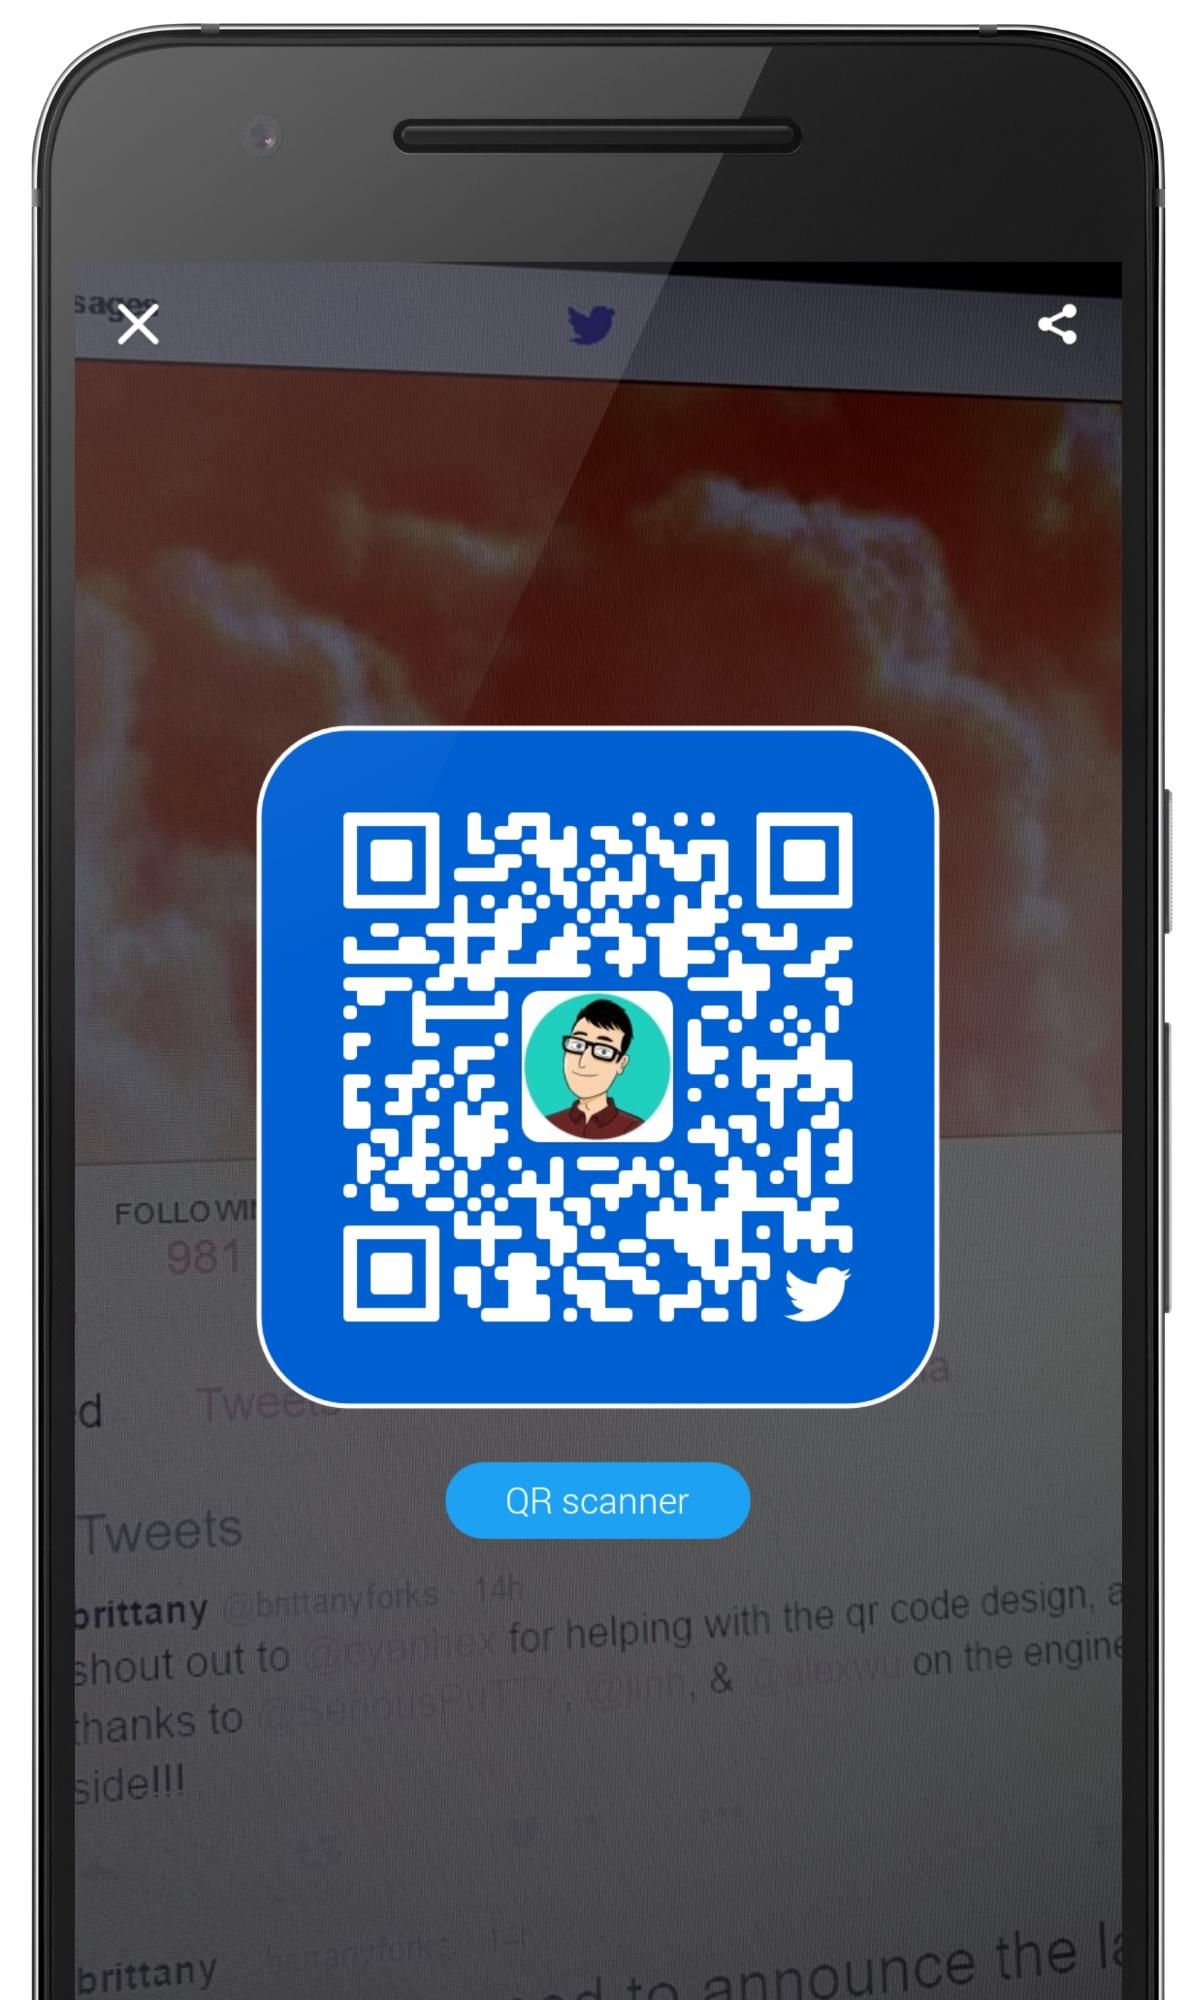 Twitter Introduces Snapchat-style QR Codes